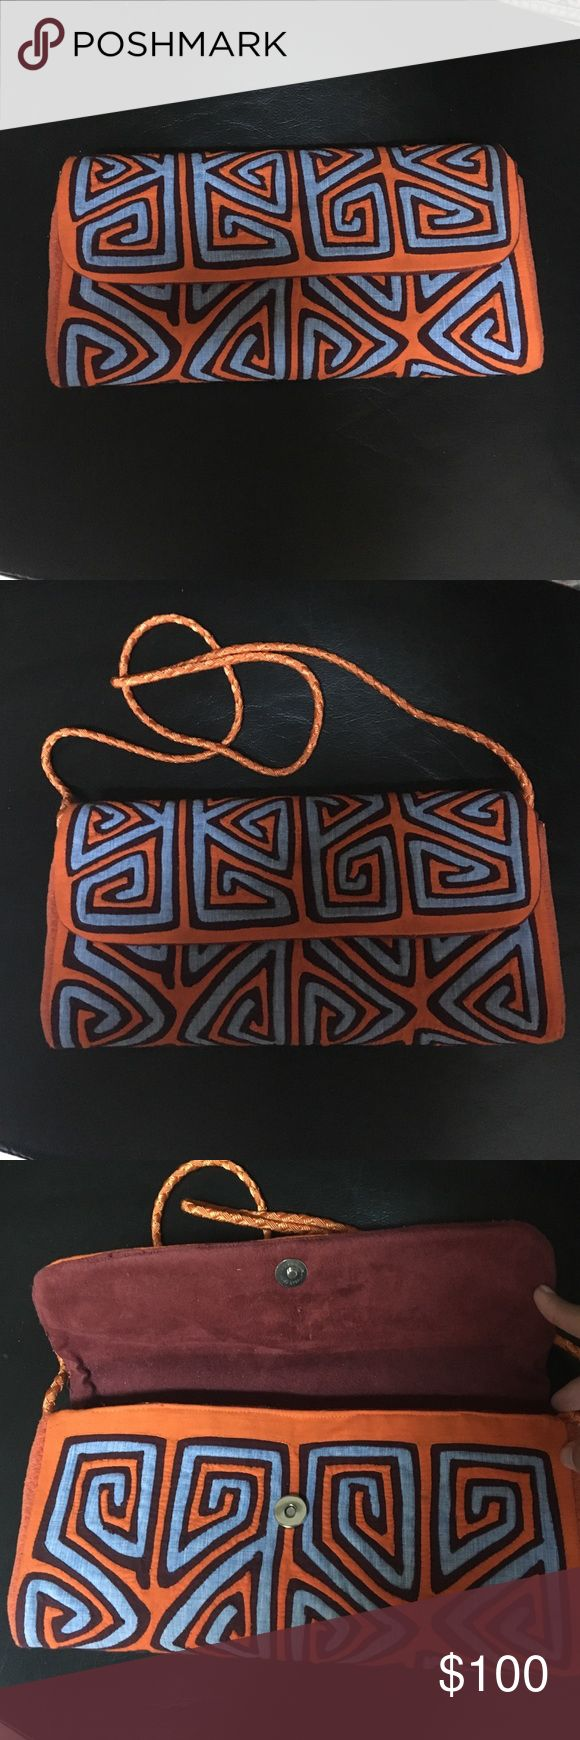 Mola clutch hand made and gorgeous! This Orange and blue with burgundy accents mola clutch will be the hit at your holiday parties! All hand made by artisans in Colombia. Price is firm! Measures 12x6.5x2 in. by_ivonneh Bags Clutches & Wristlets